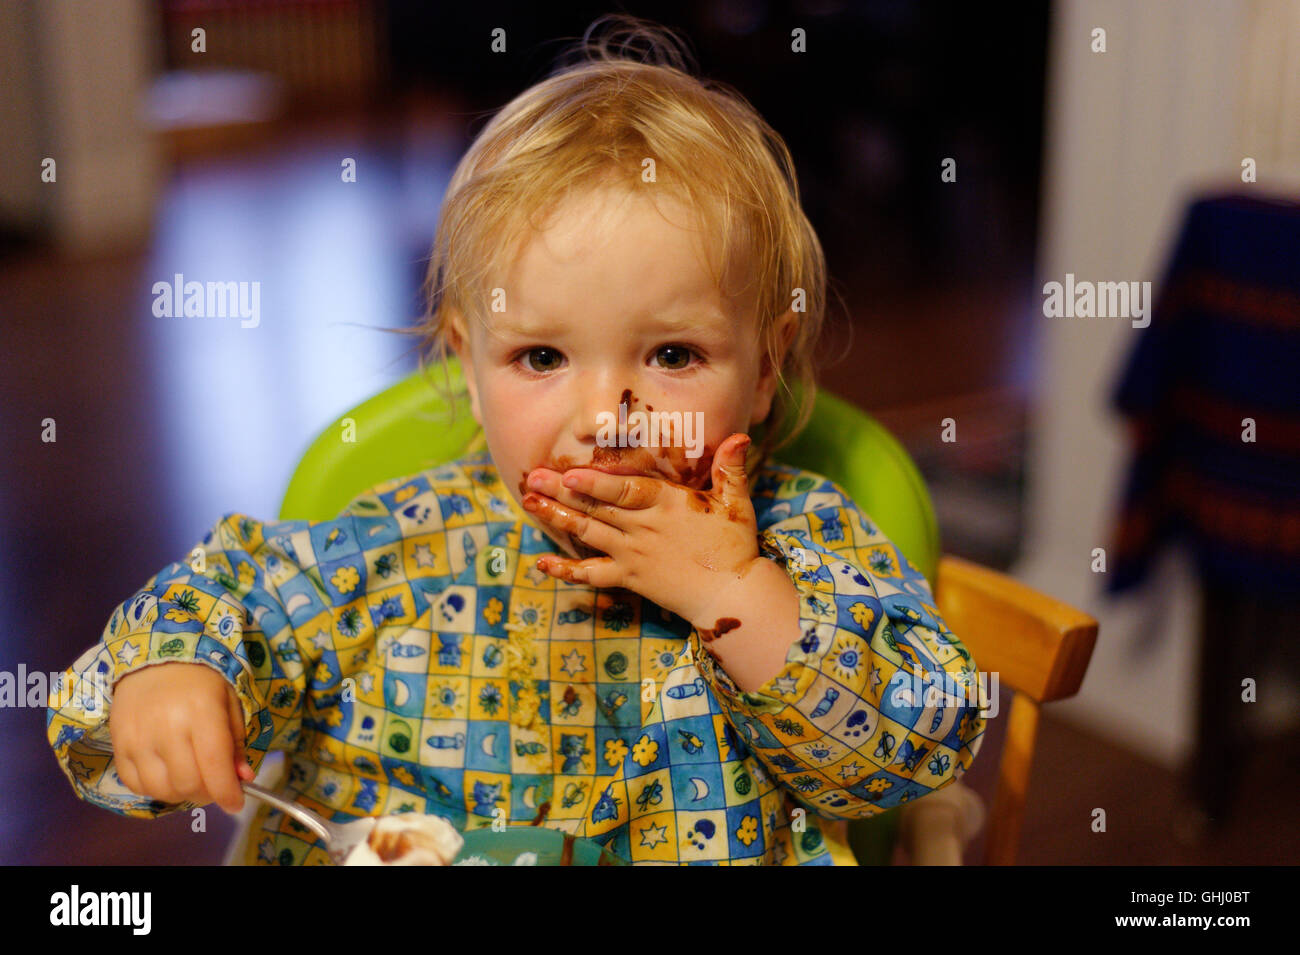 A little girl (2 yrs old) eating chocolate cake - Stock Image